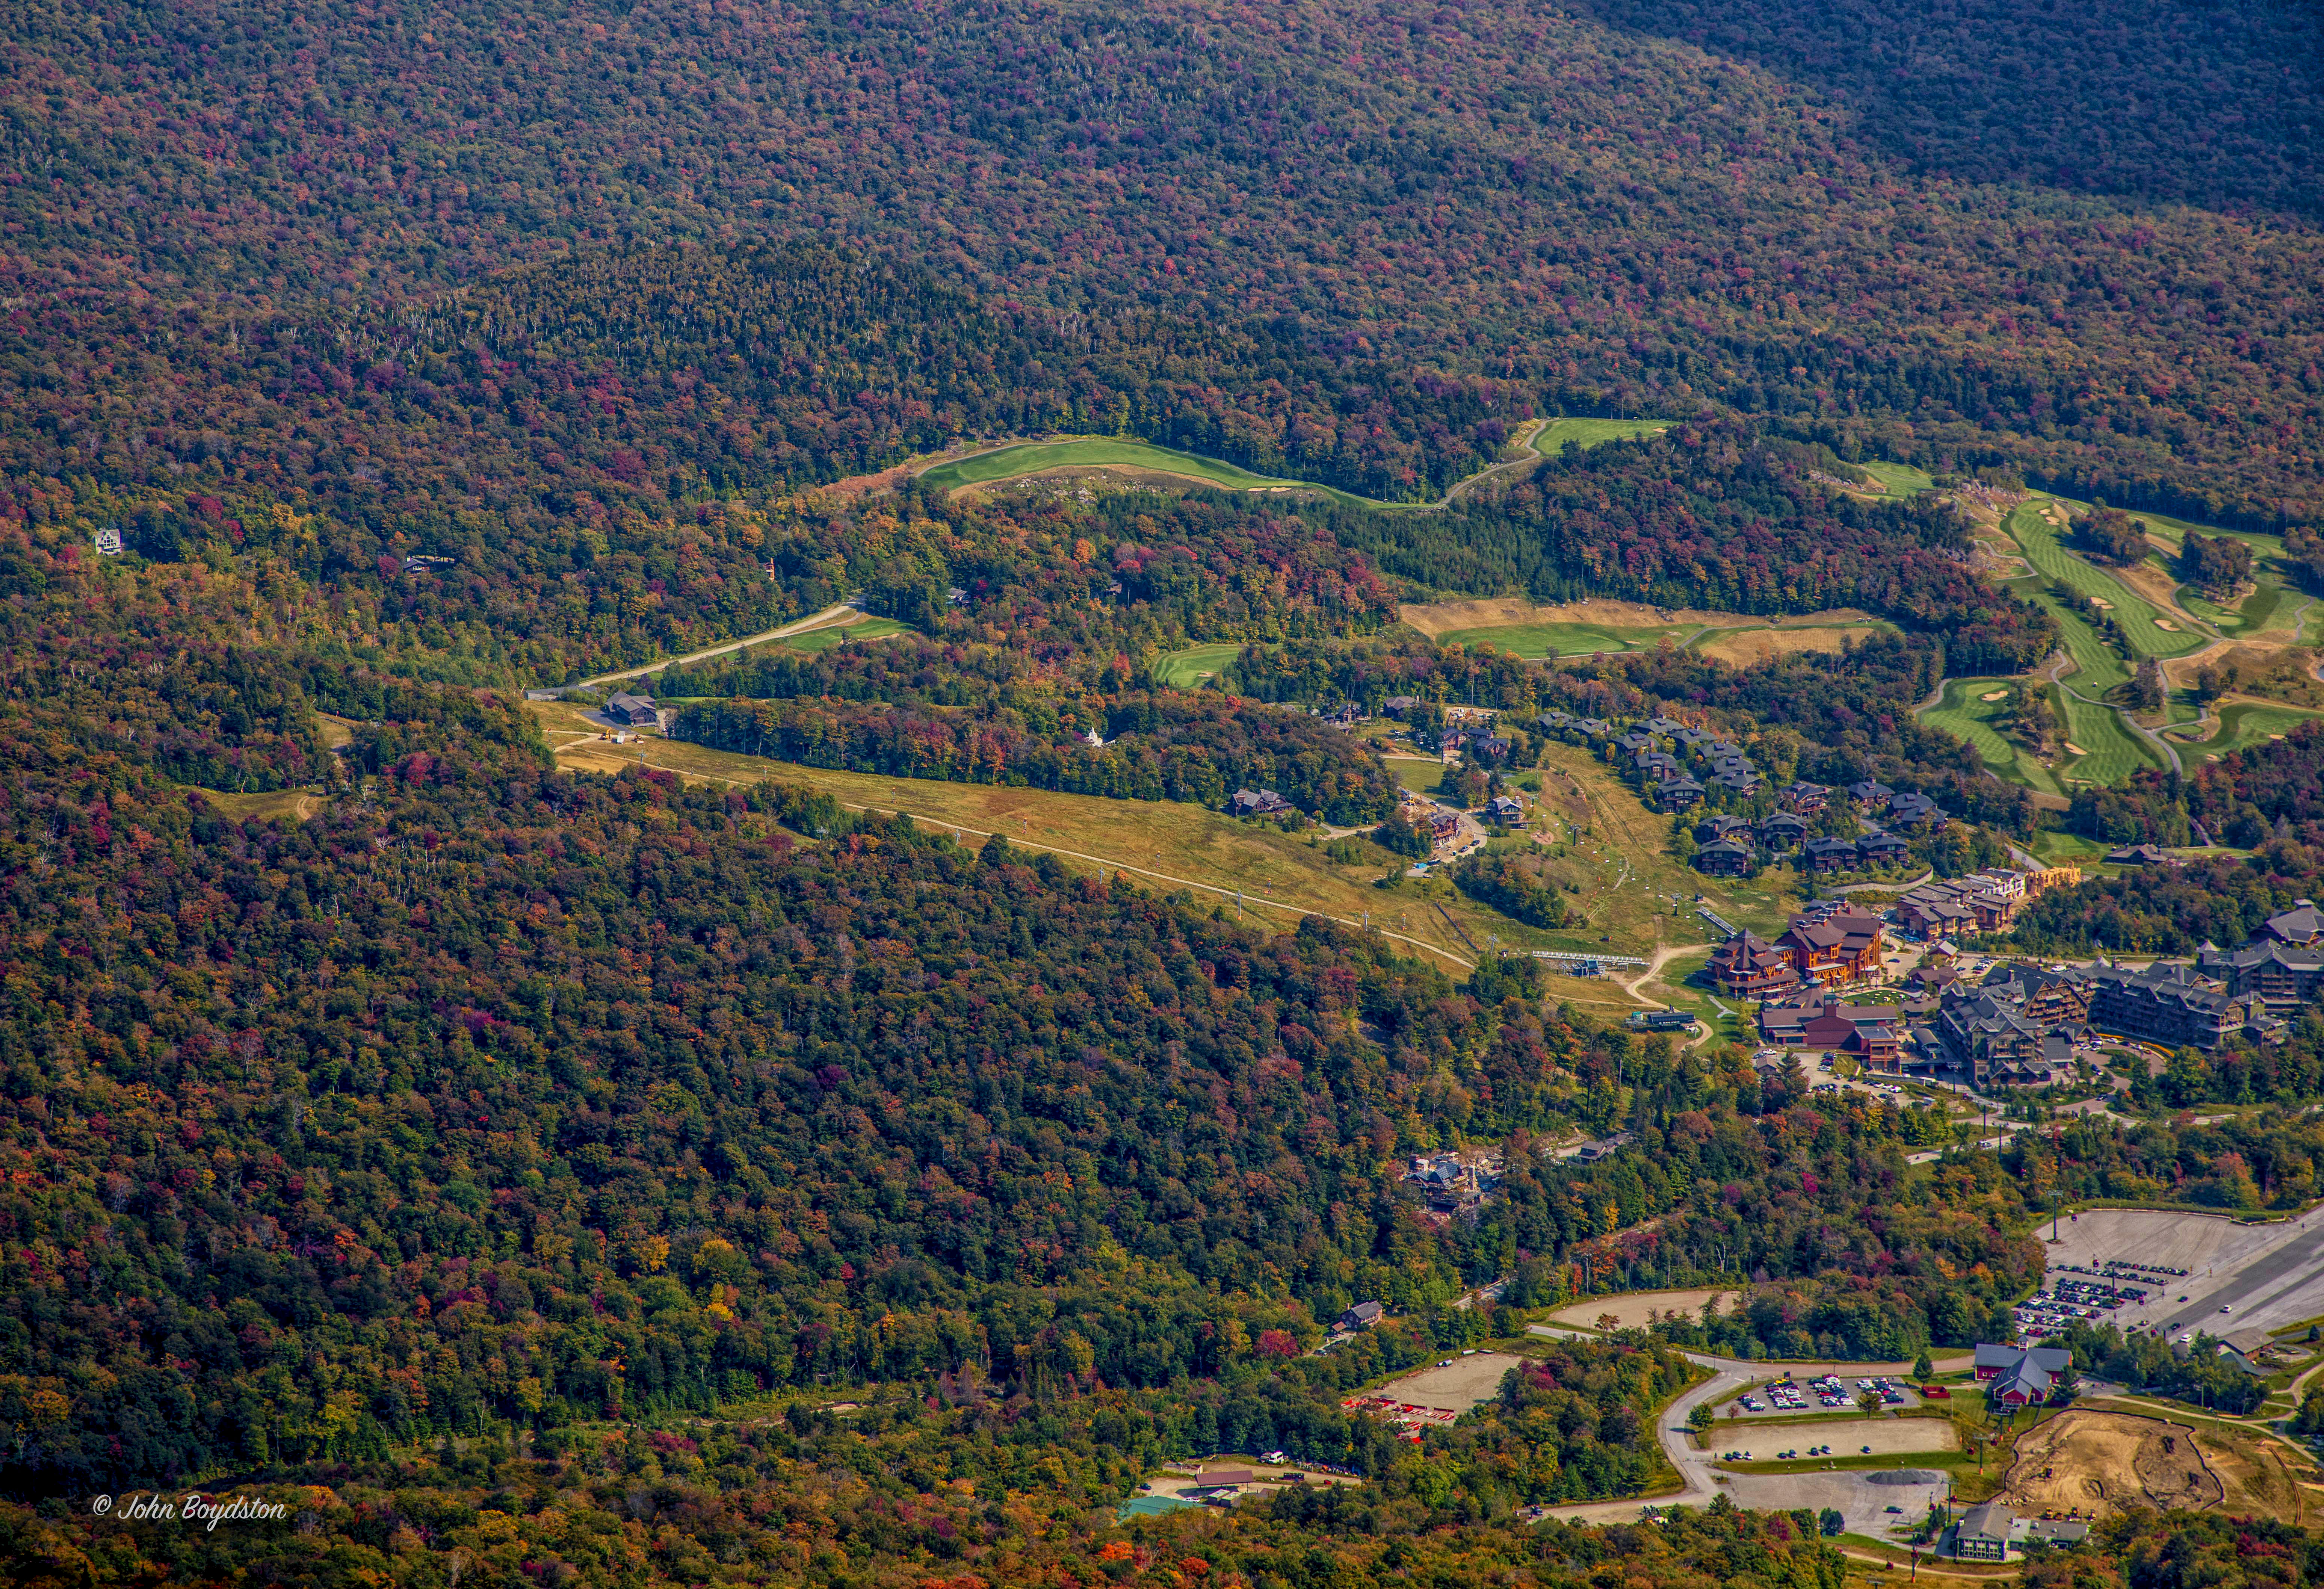 Stowe Mountain foliage